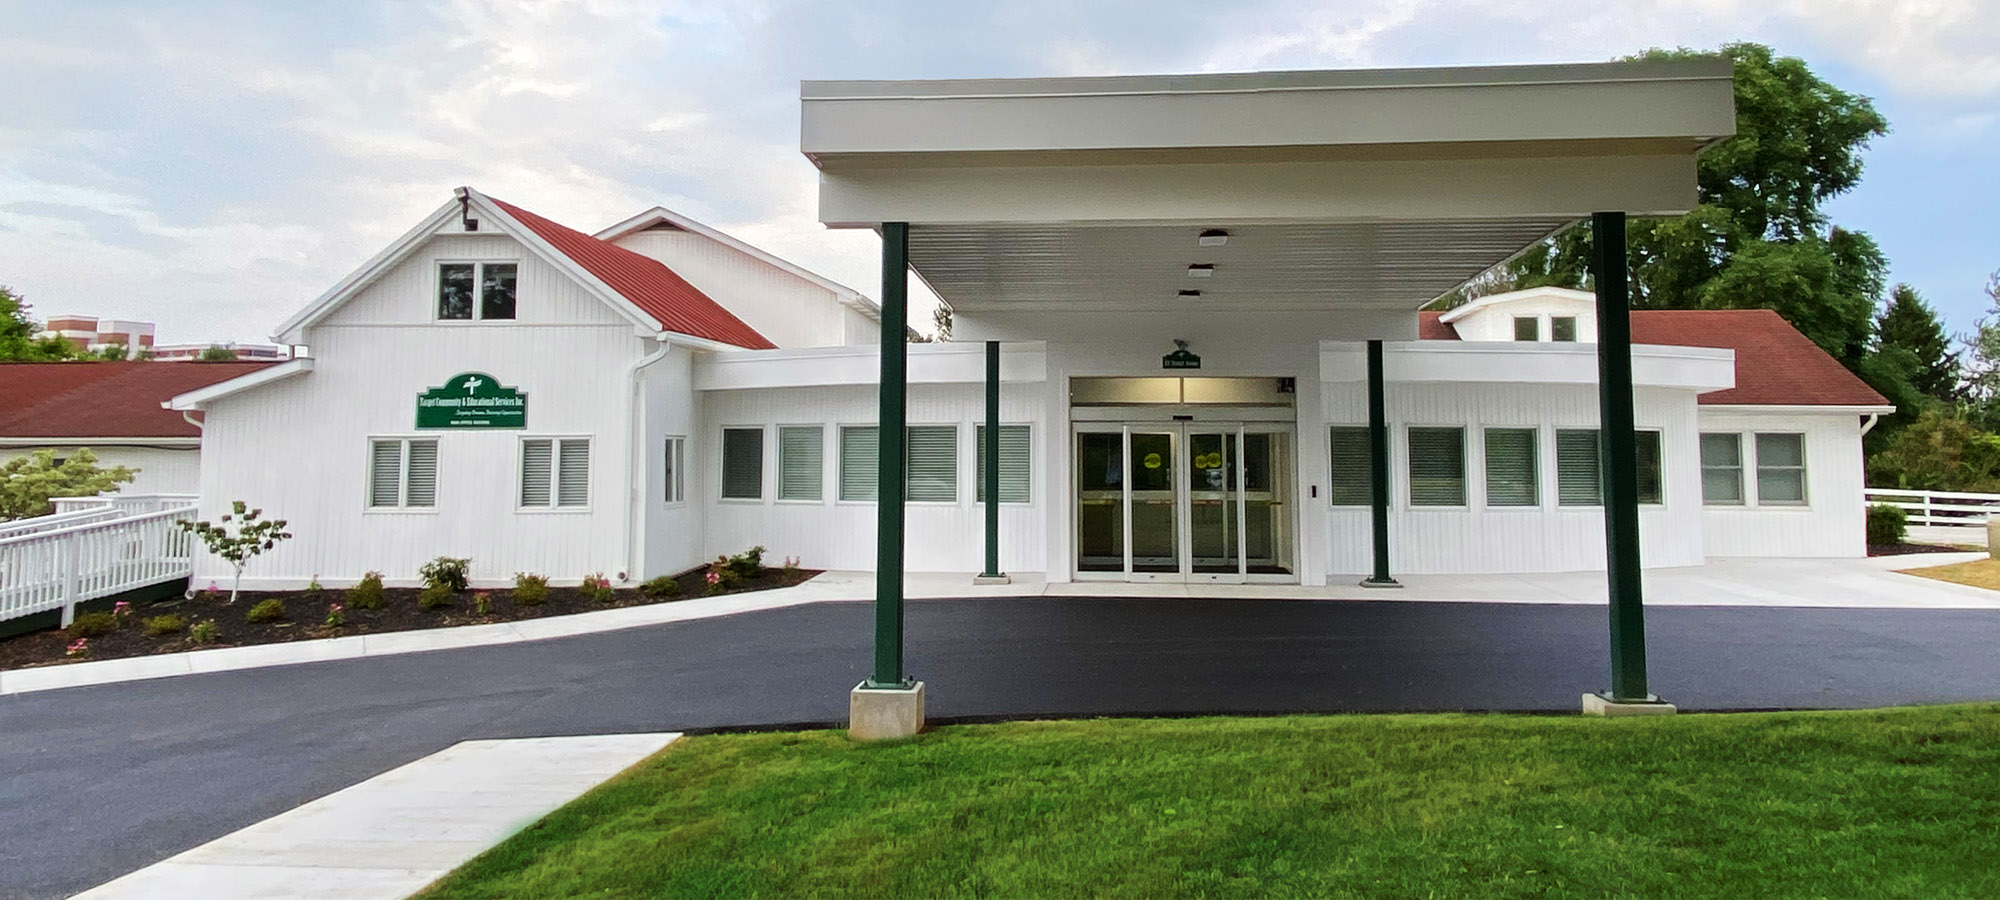 Target Community & Educational Services Westminster Maryland Location